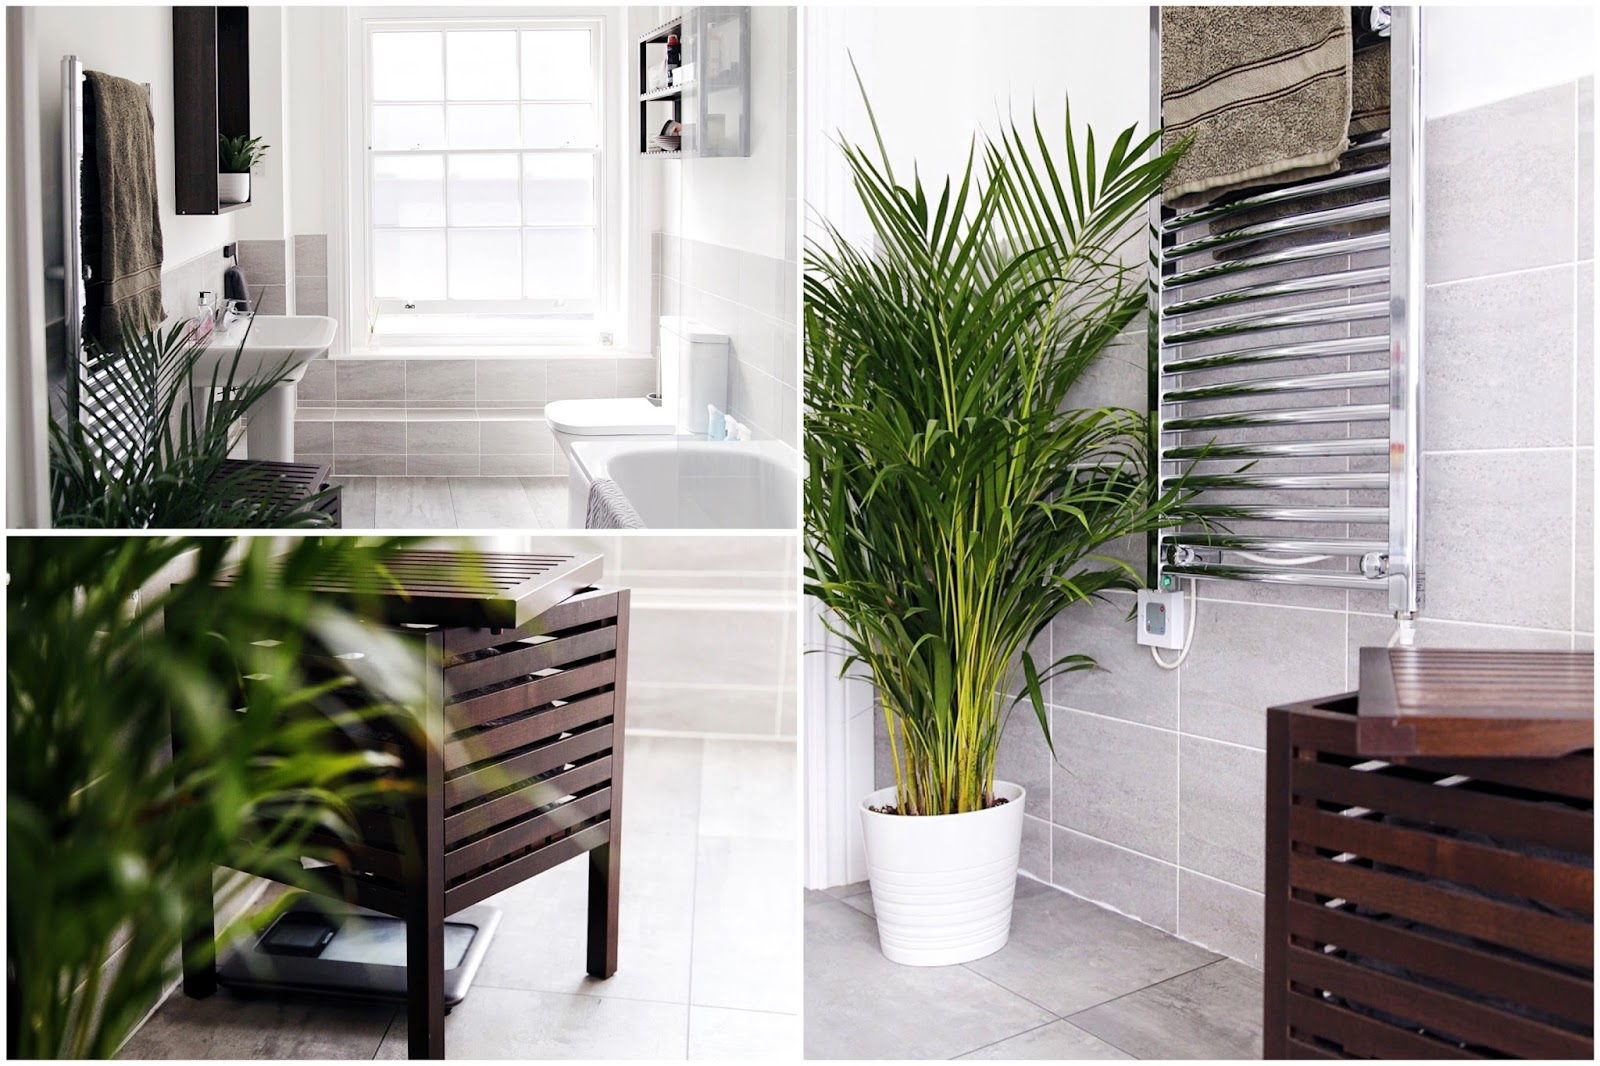 Photo montage of concrete botanical bathroom with IKEA Molger furnishings.